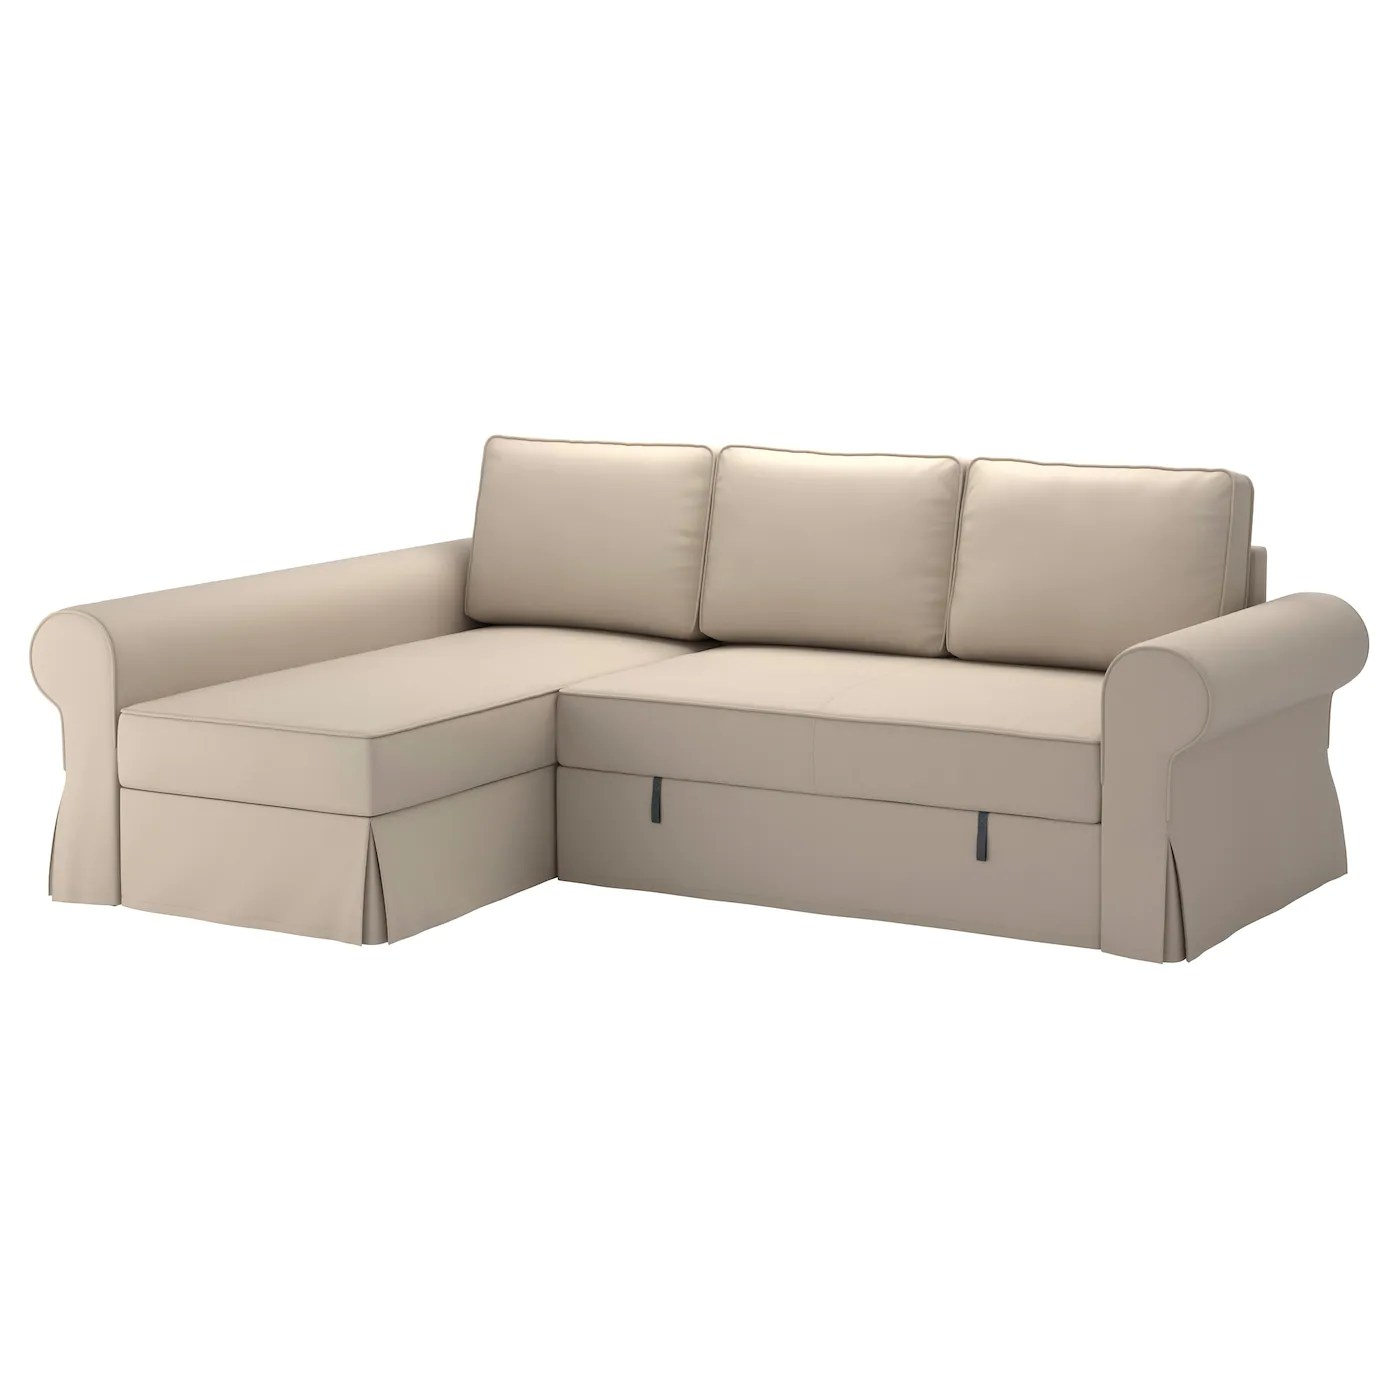 sofa chair bed ikea folding chairs at costco backabro with chaise longue ramna beige